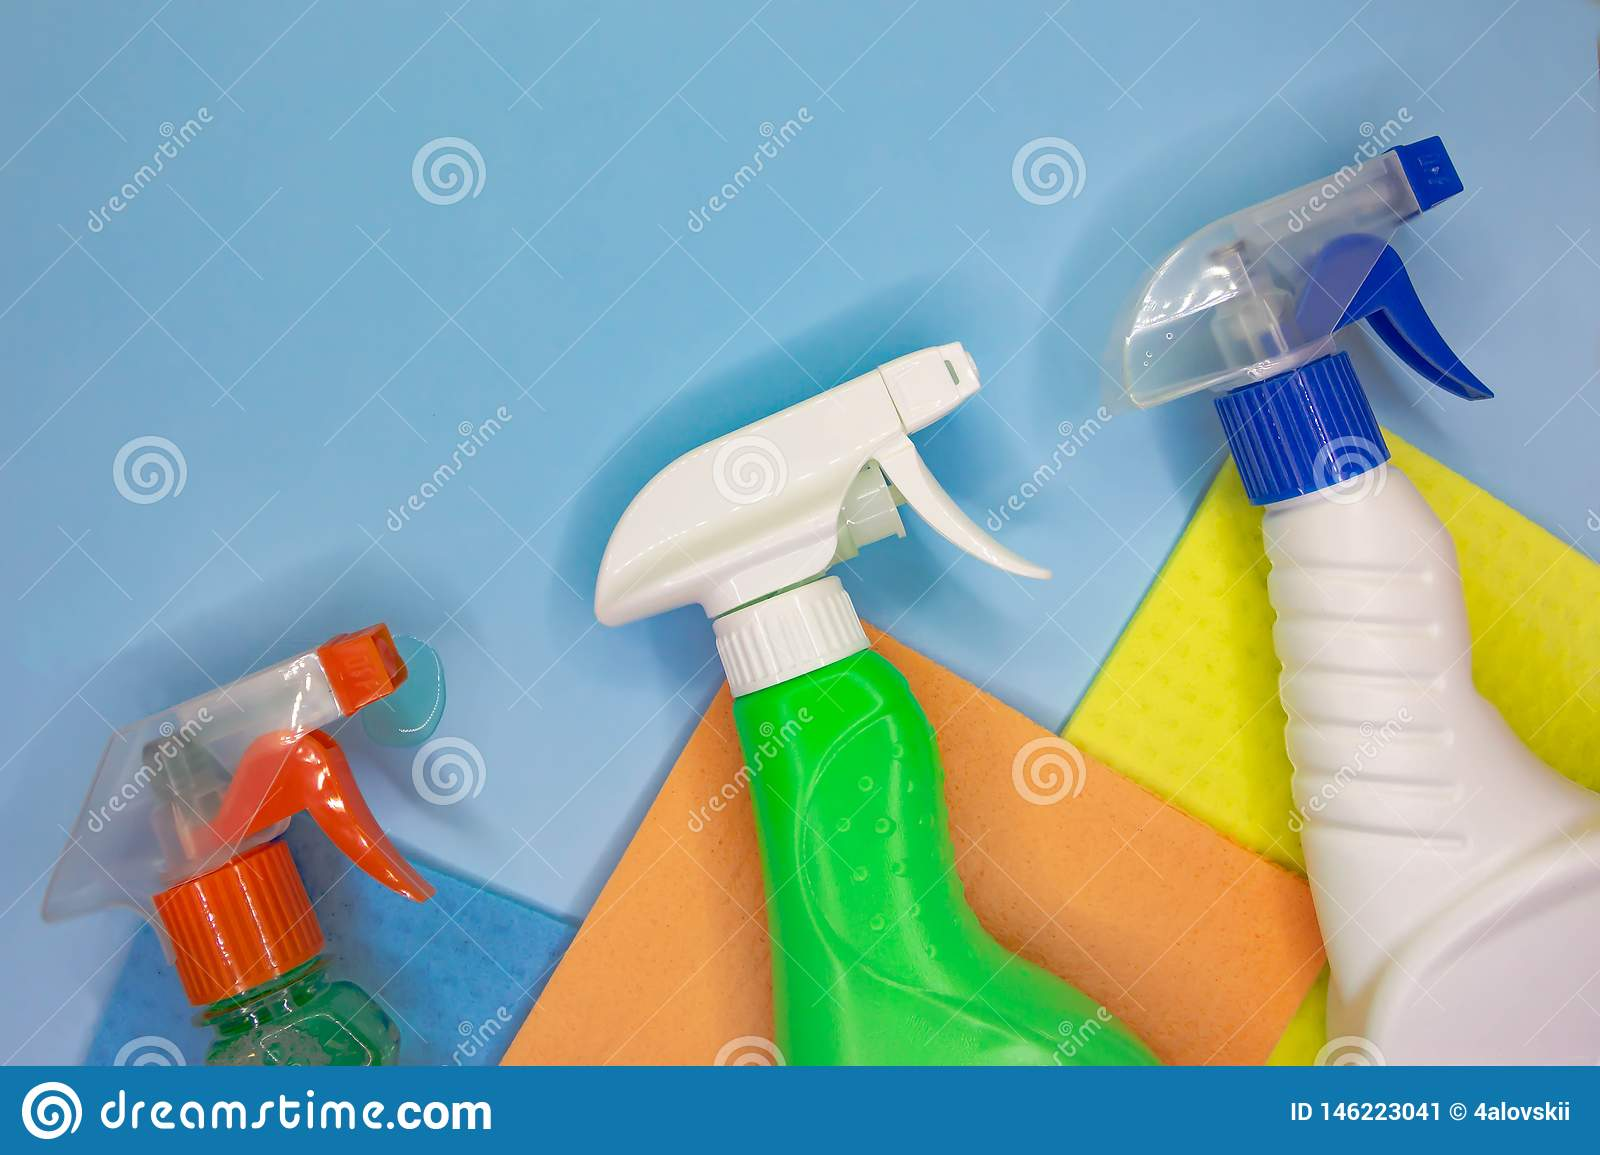 Detergents and cleaning accessories in blue color. Cleaning service, small business idea